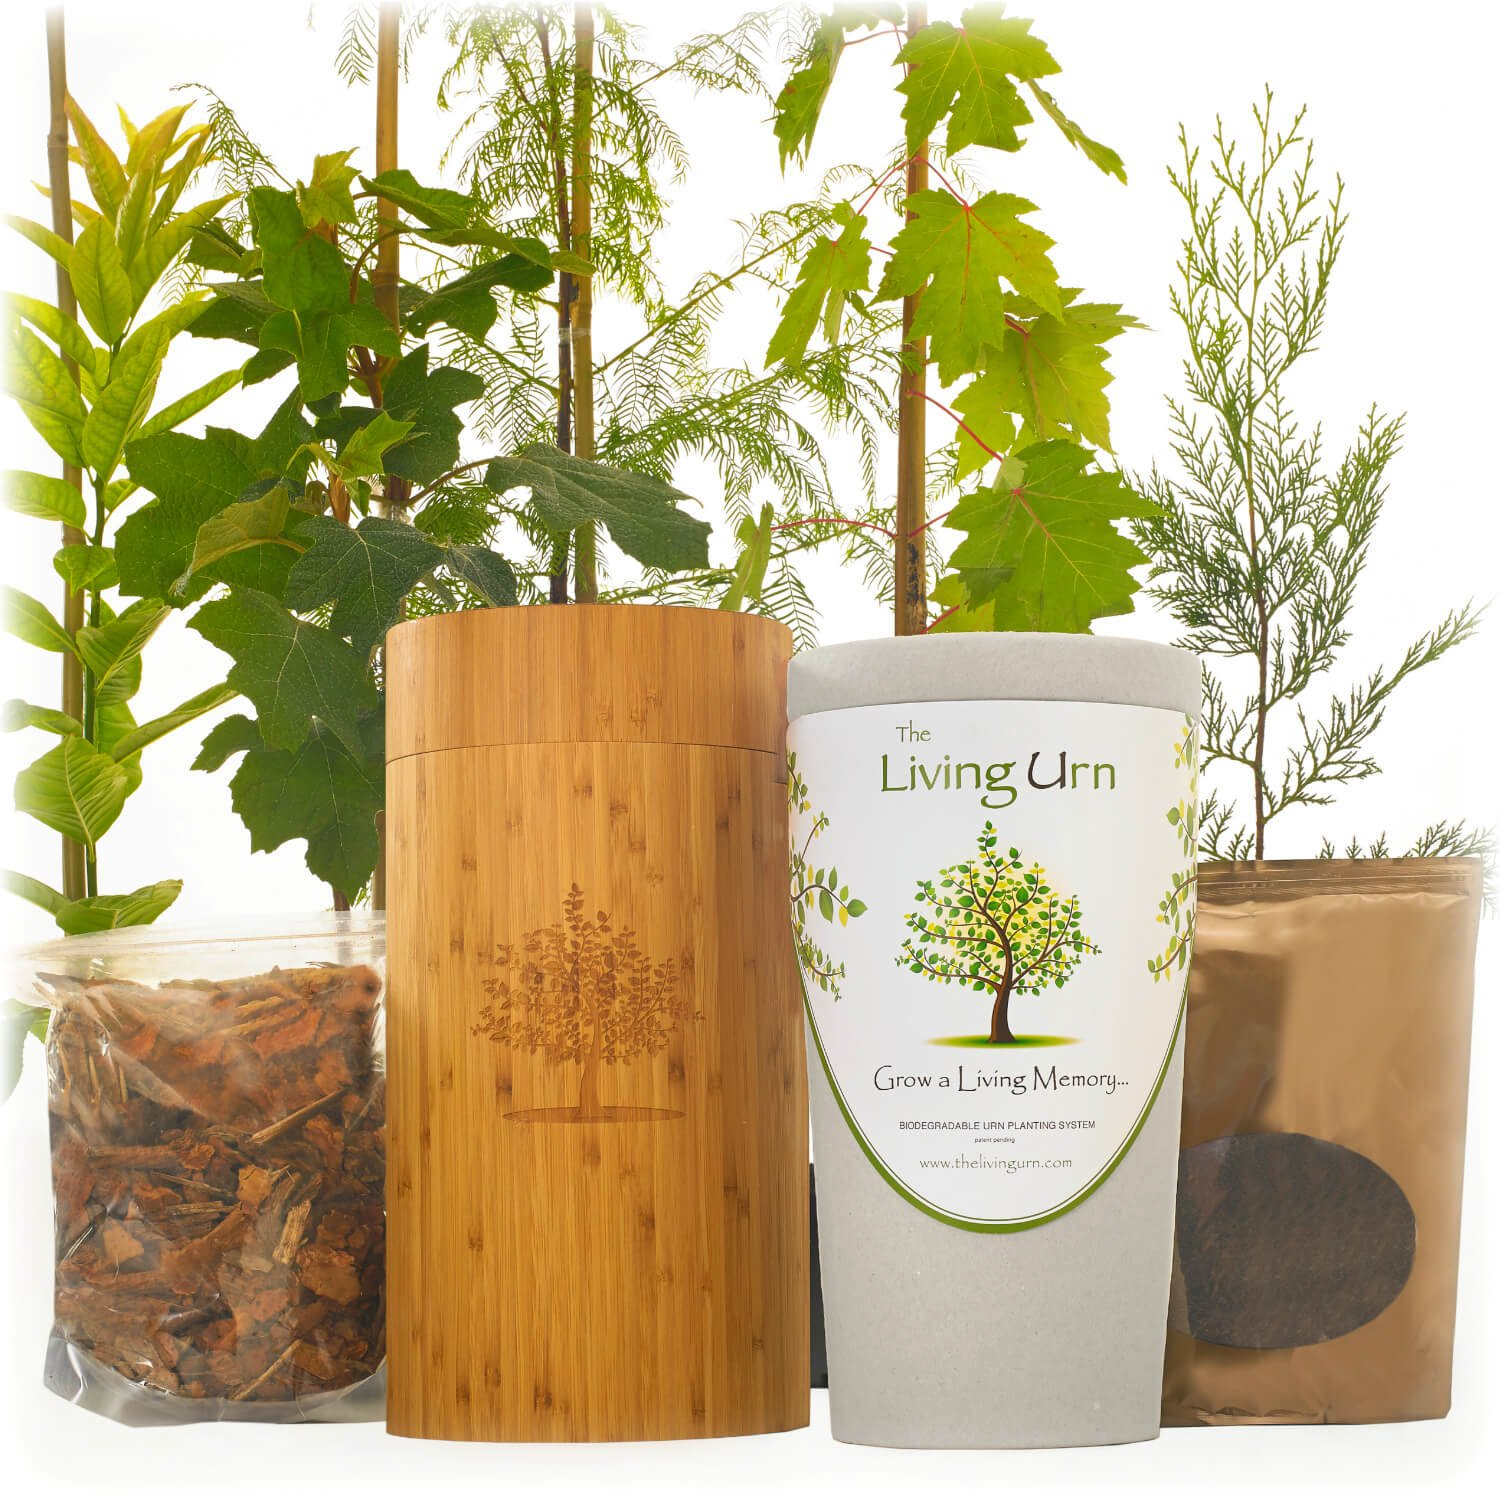 The Living Urn for People. Cremation Funeral Urn Including a Premium Tree Seedling. Grow a Living Memory Tree from the Ashes of a Loved One. 100% Biodegradable.